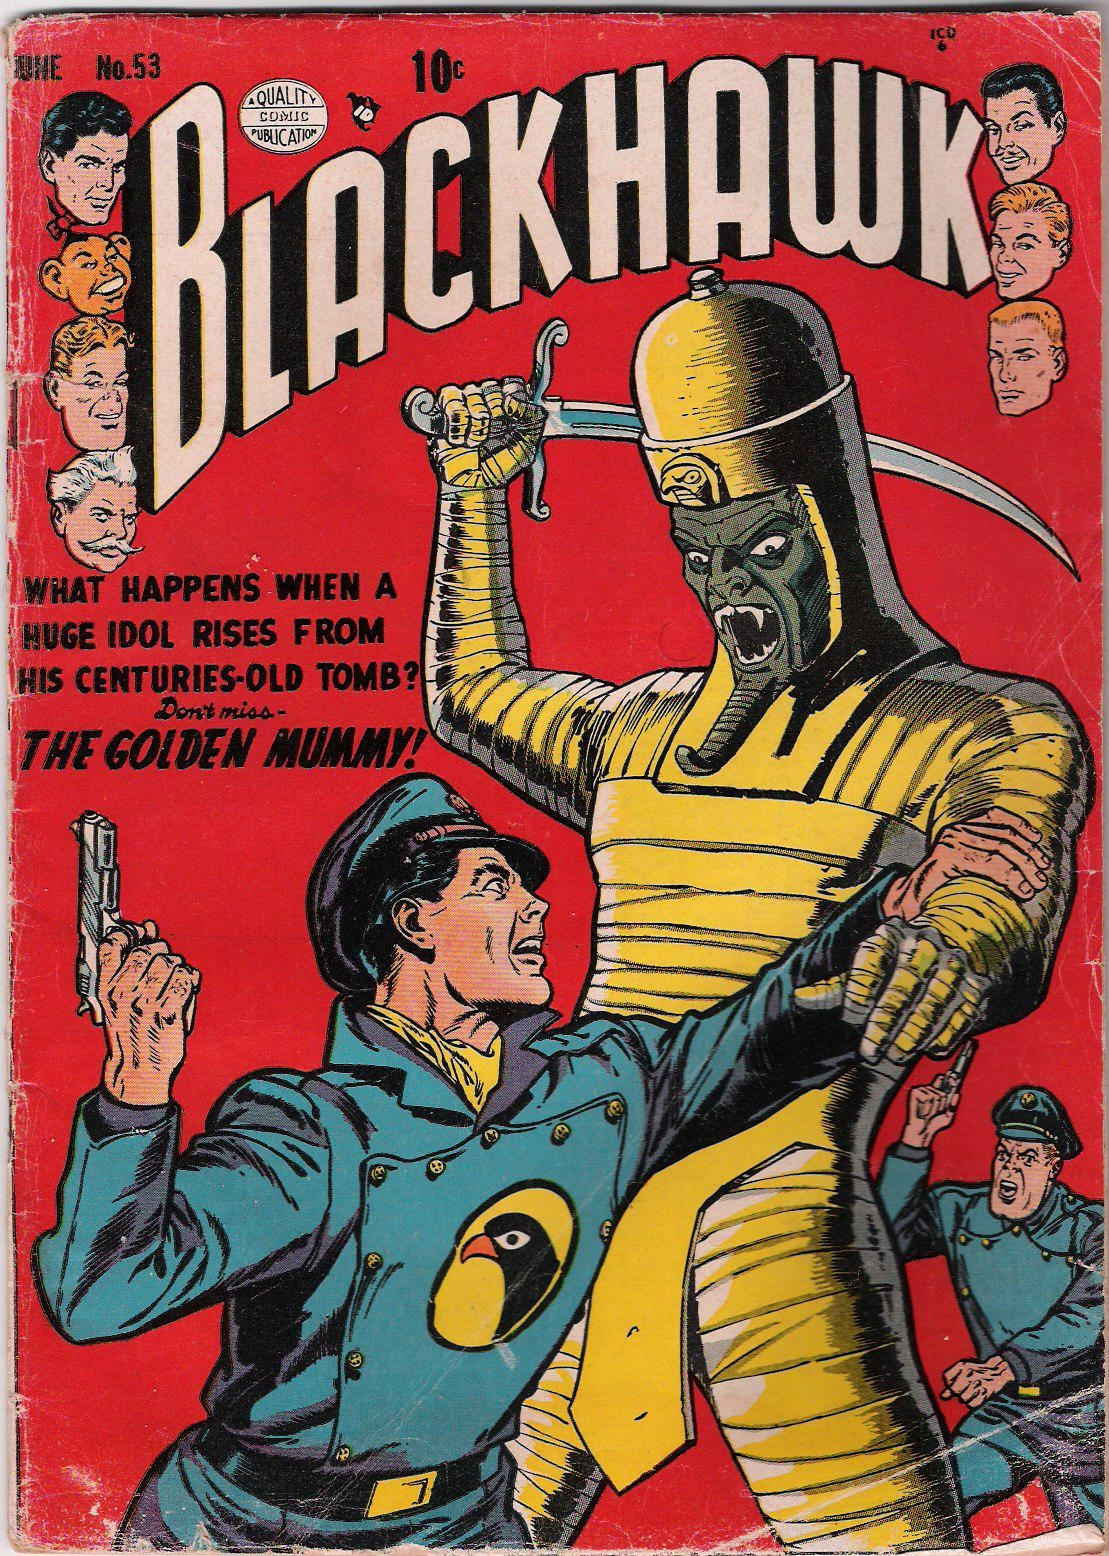 Blackhawk Vol 1 53